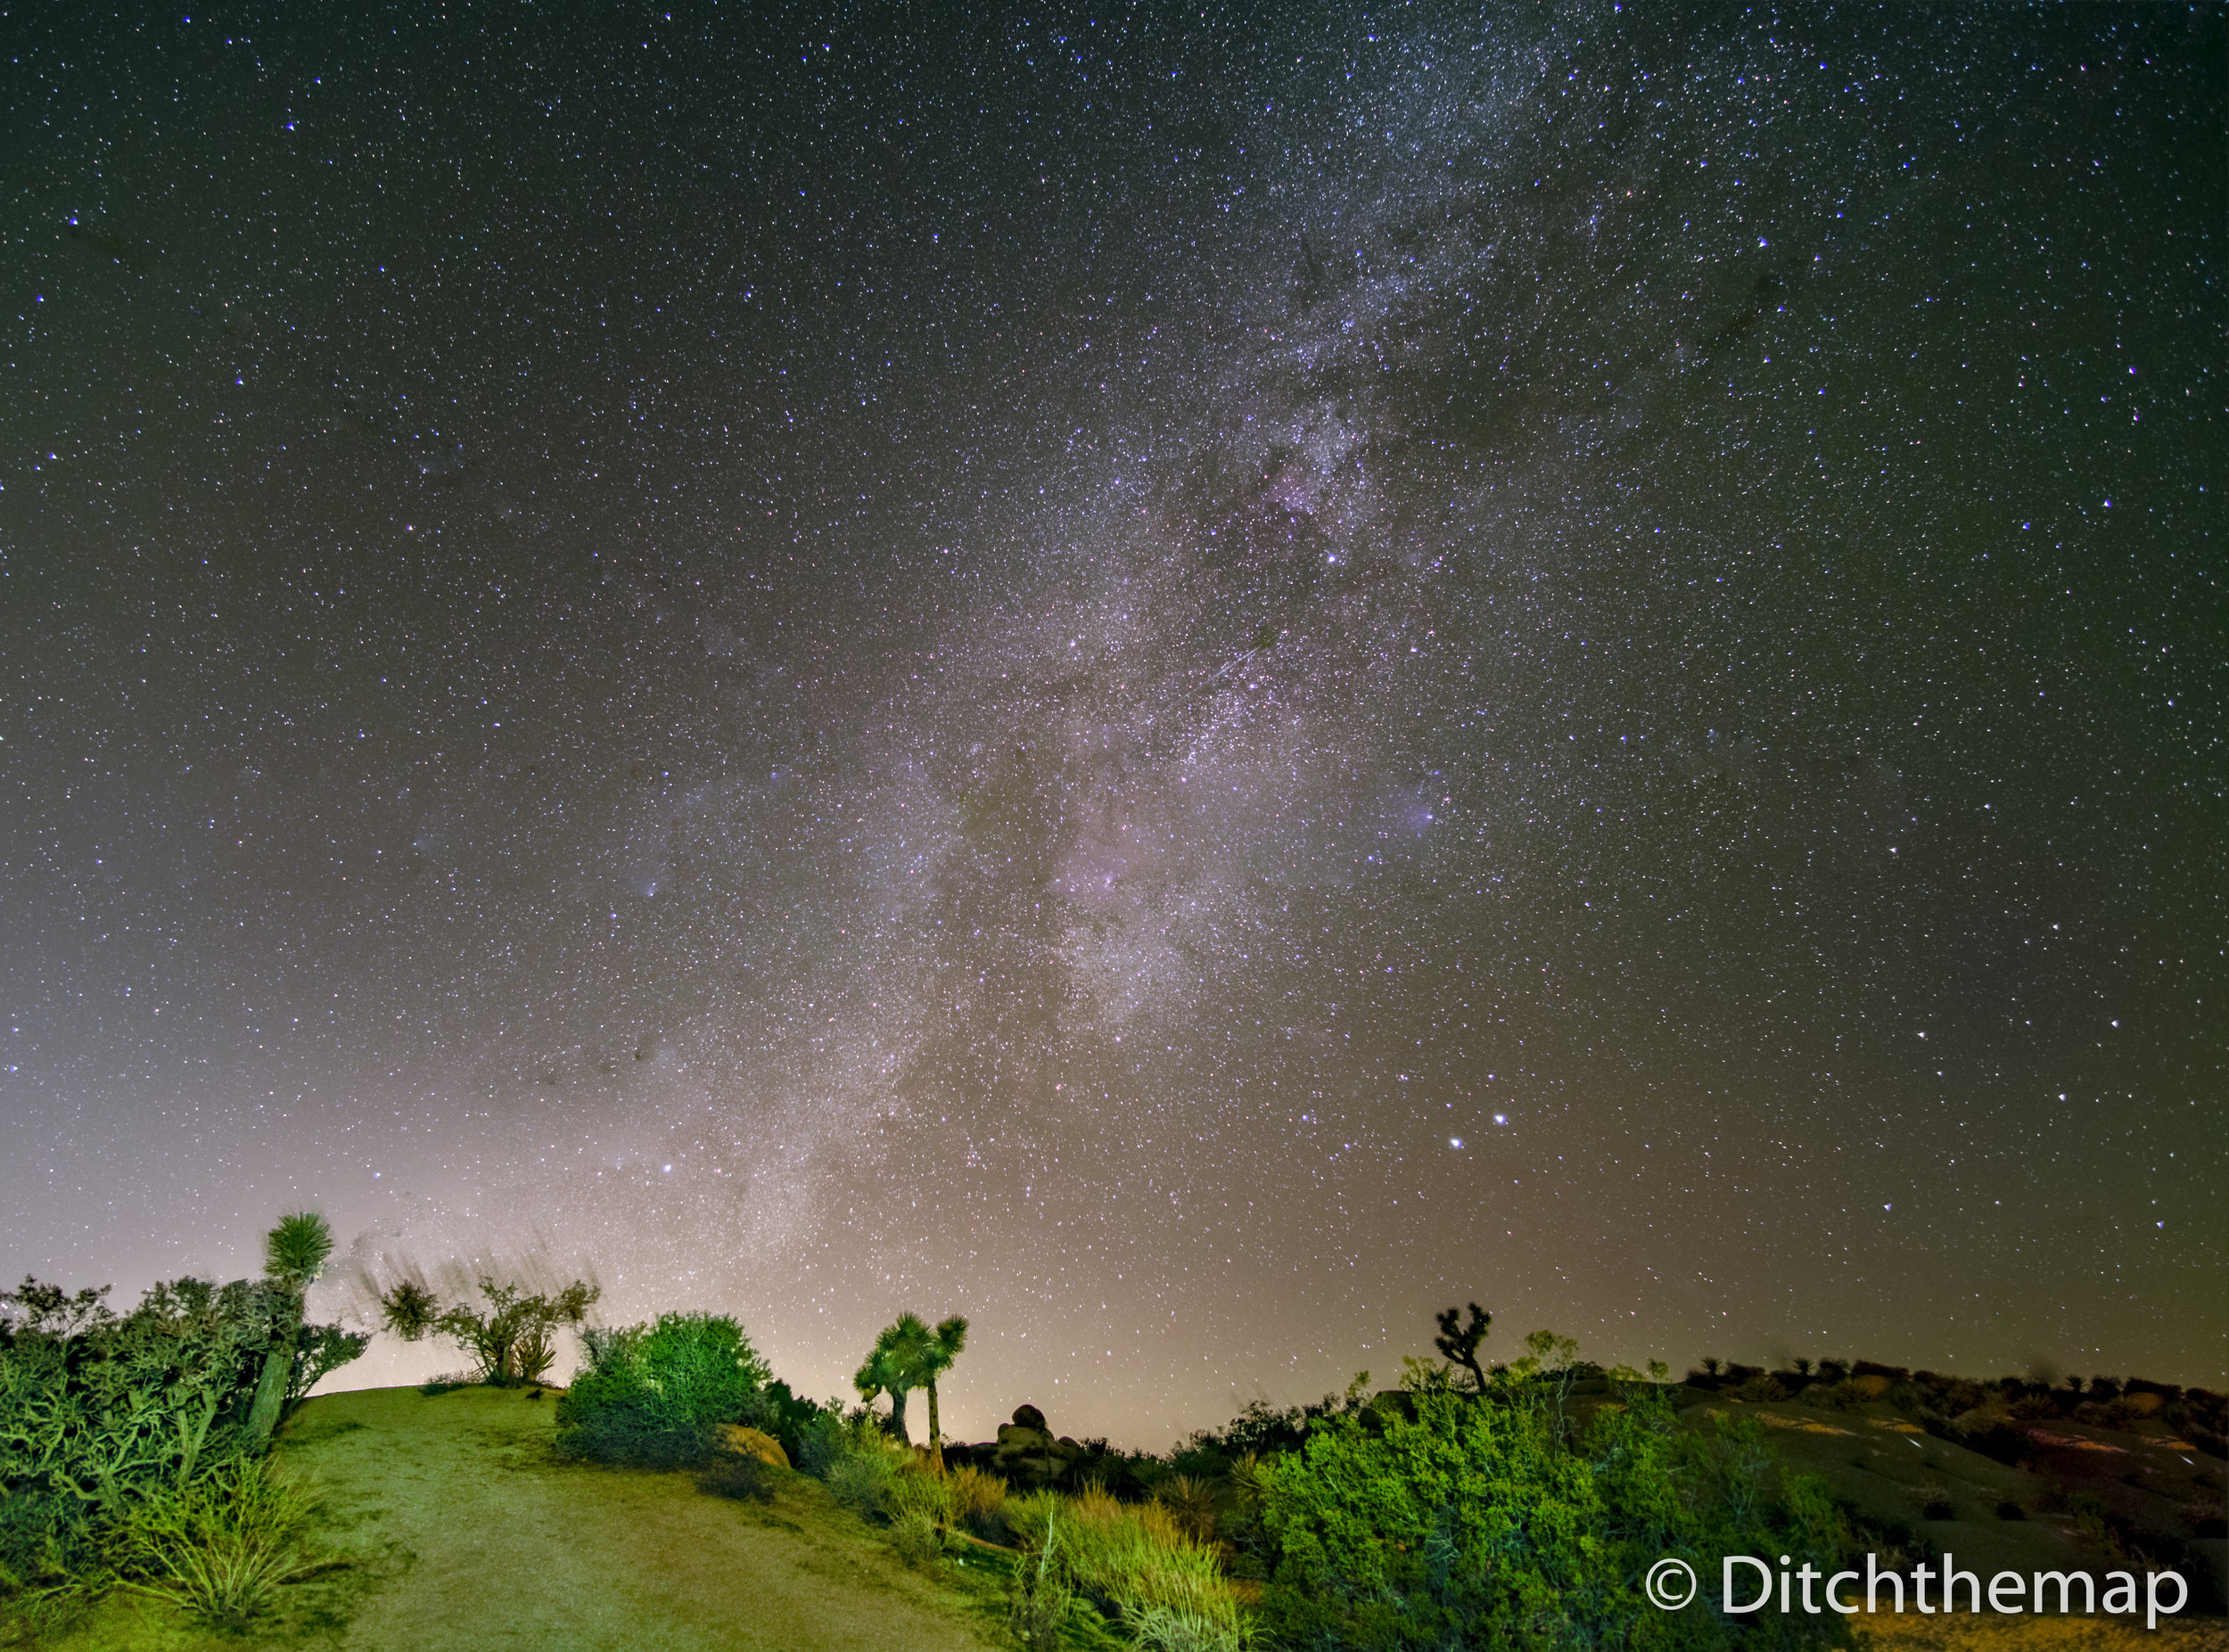 Milky Way Starscape in South East California